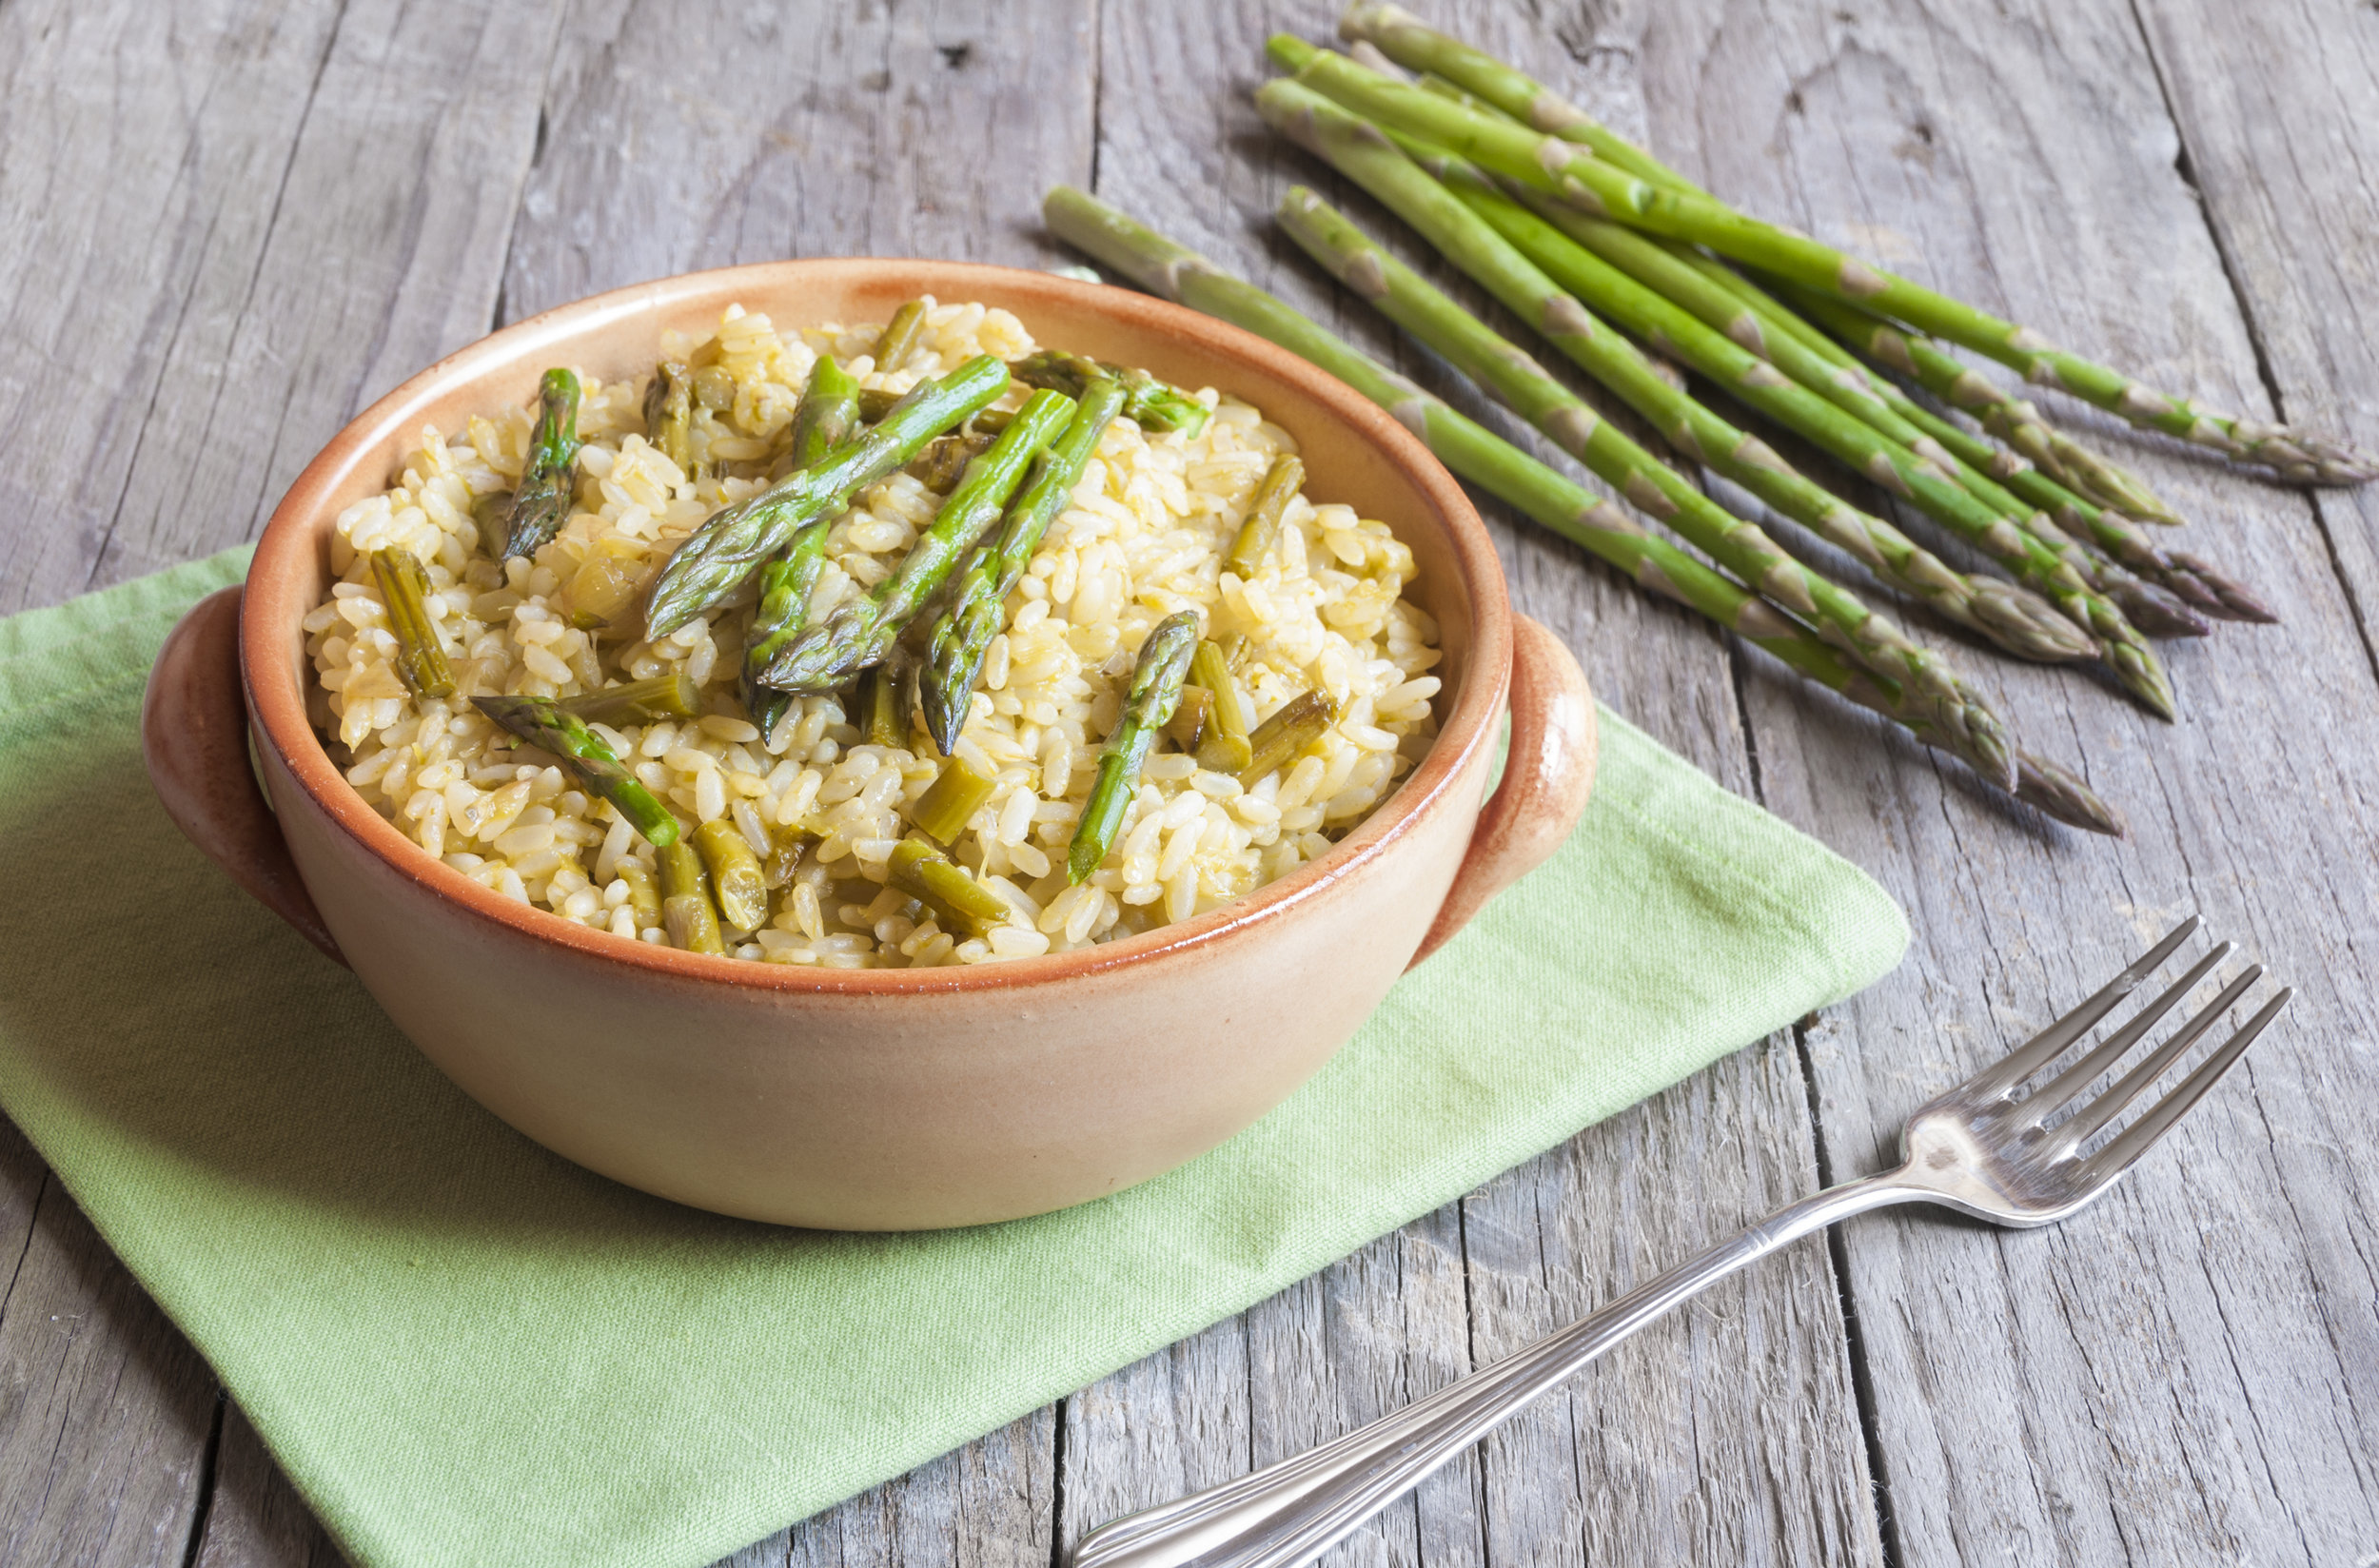 Risotto with asparagus, peas and spinach